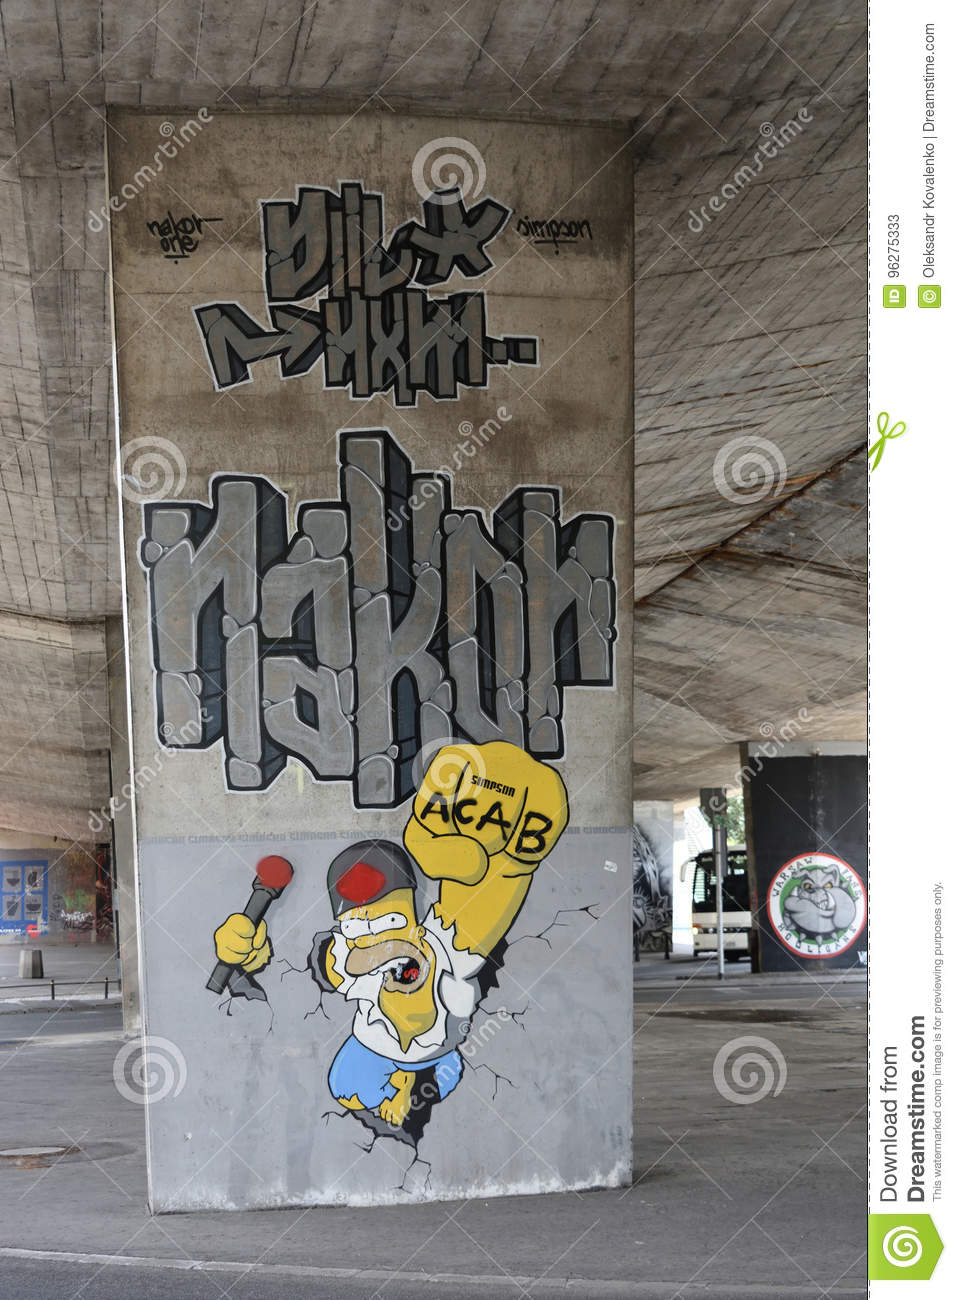 Graffiti With Homer Simpson Created By Fans Of Legia Warsaw Football Club